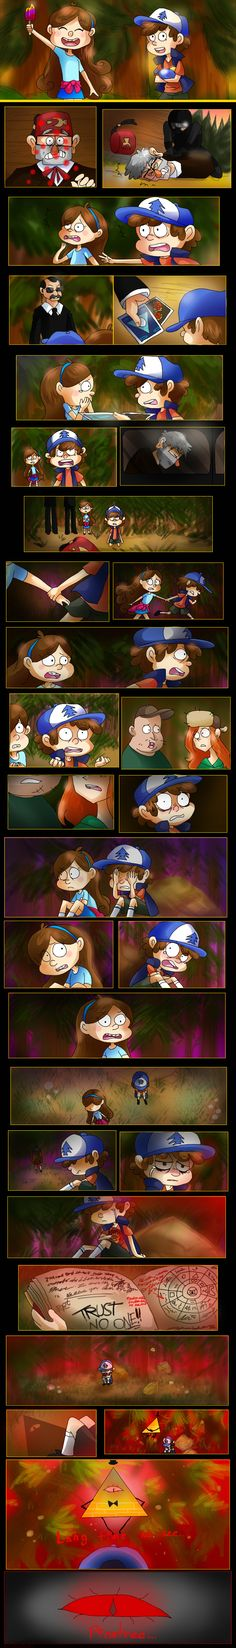 Trust no one, Pinetree... by HezuNeutral.deviantart.com on @DeviantArt